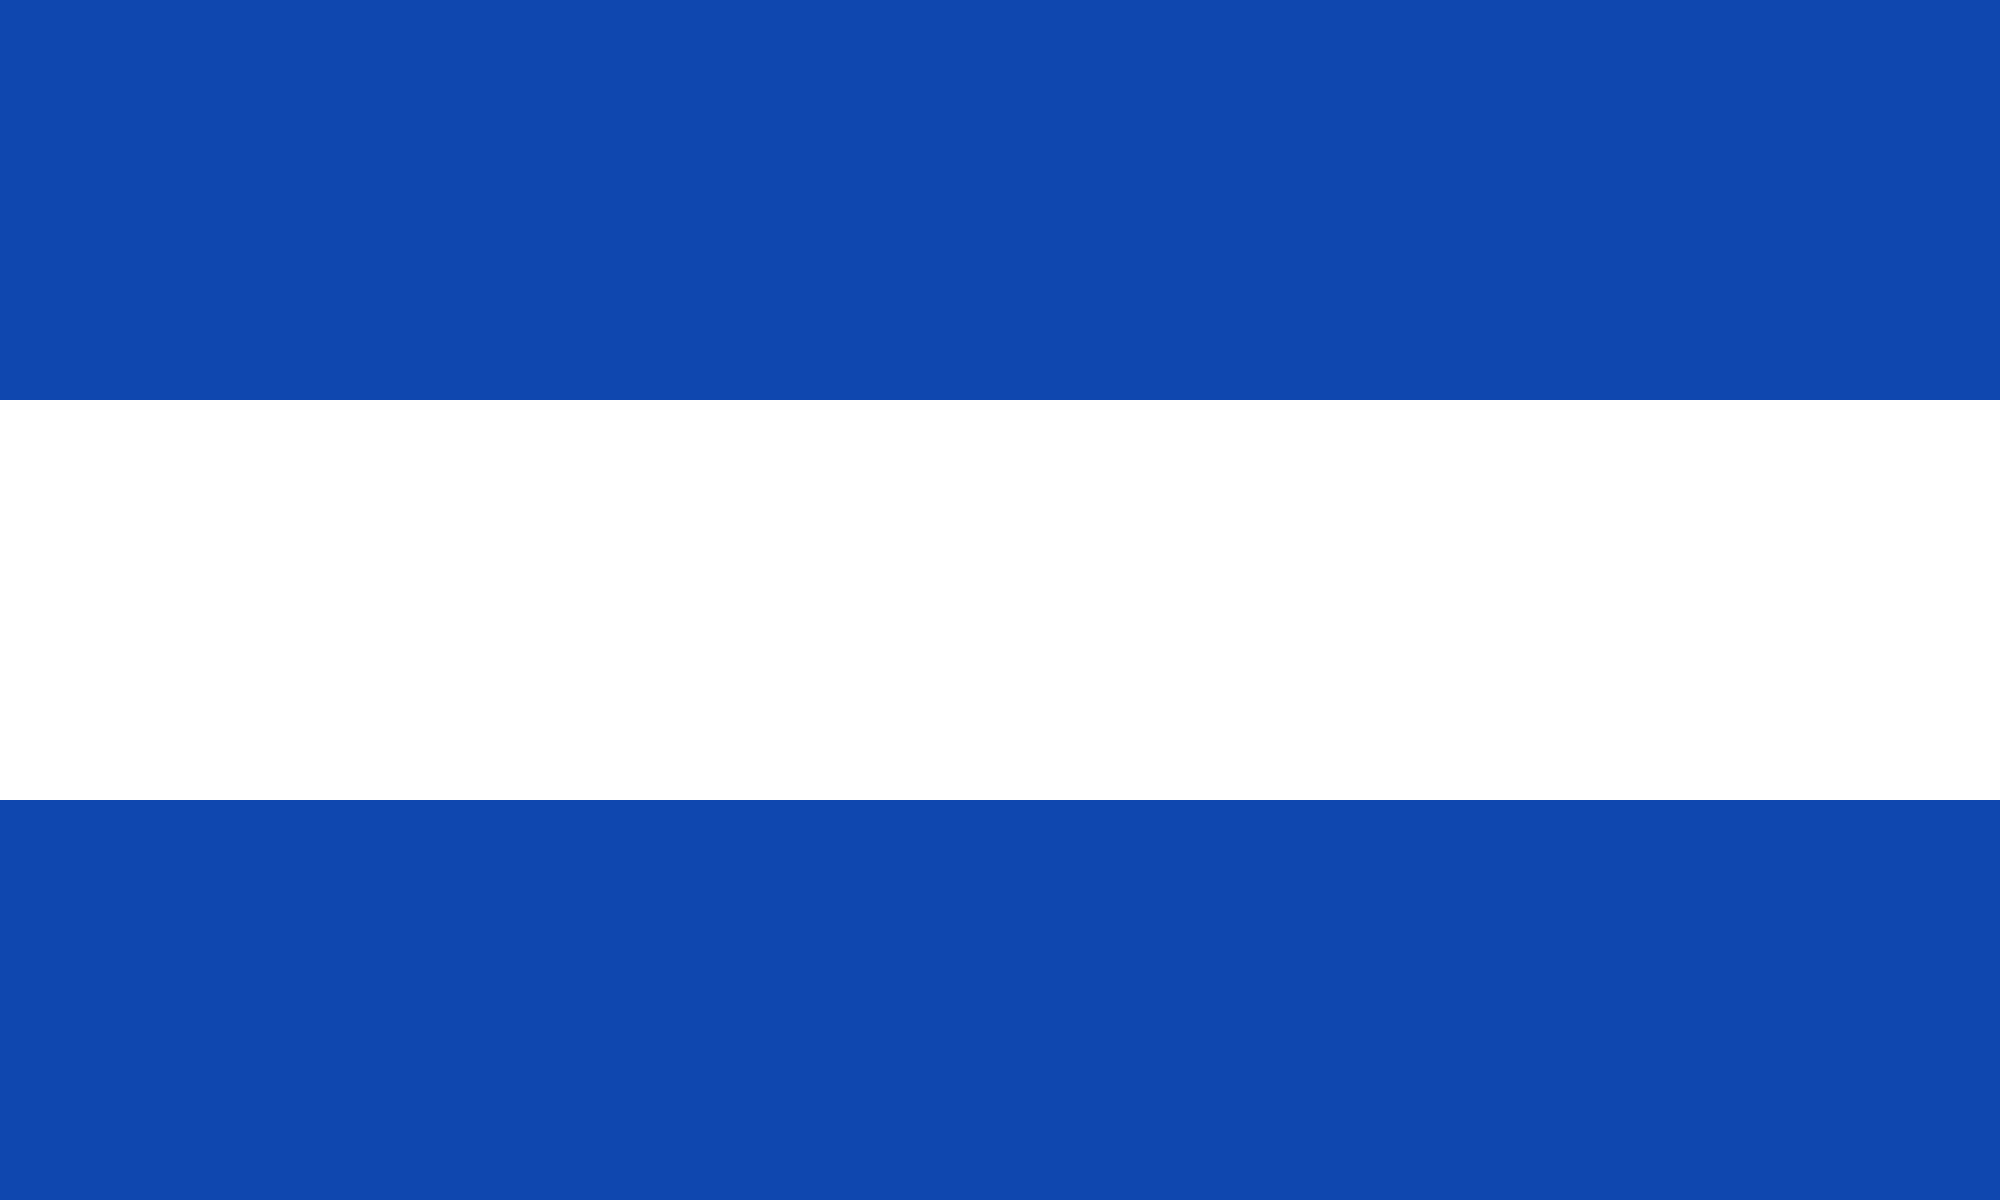 El Salvador (Variation)